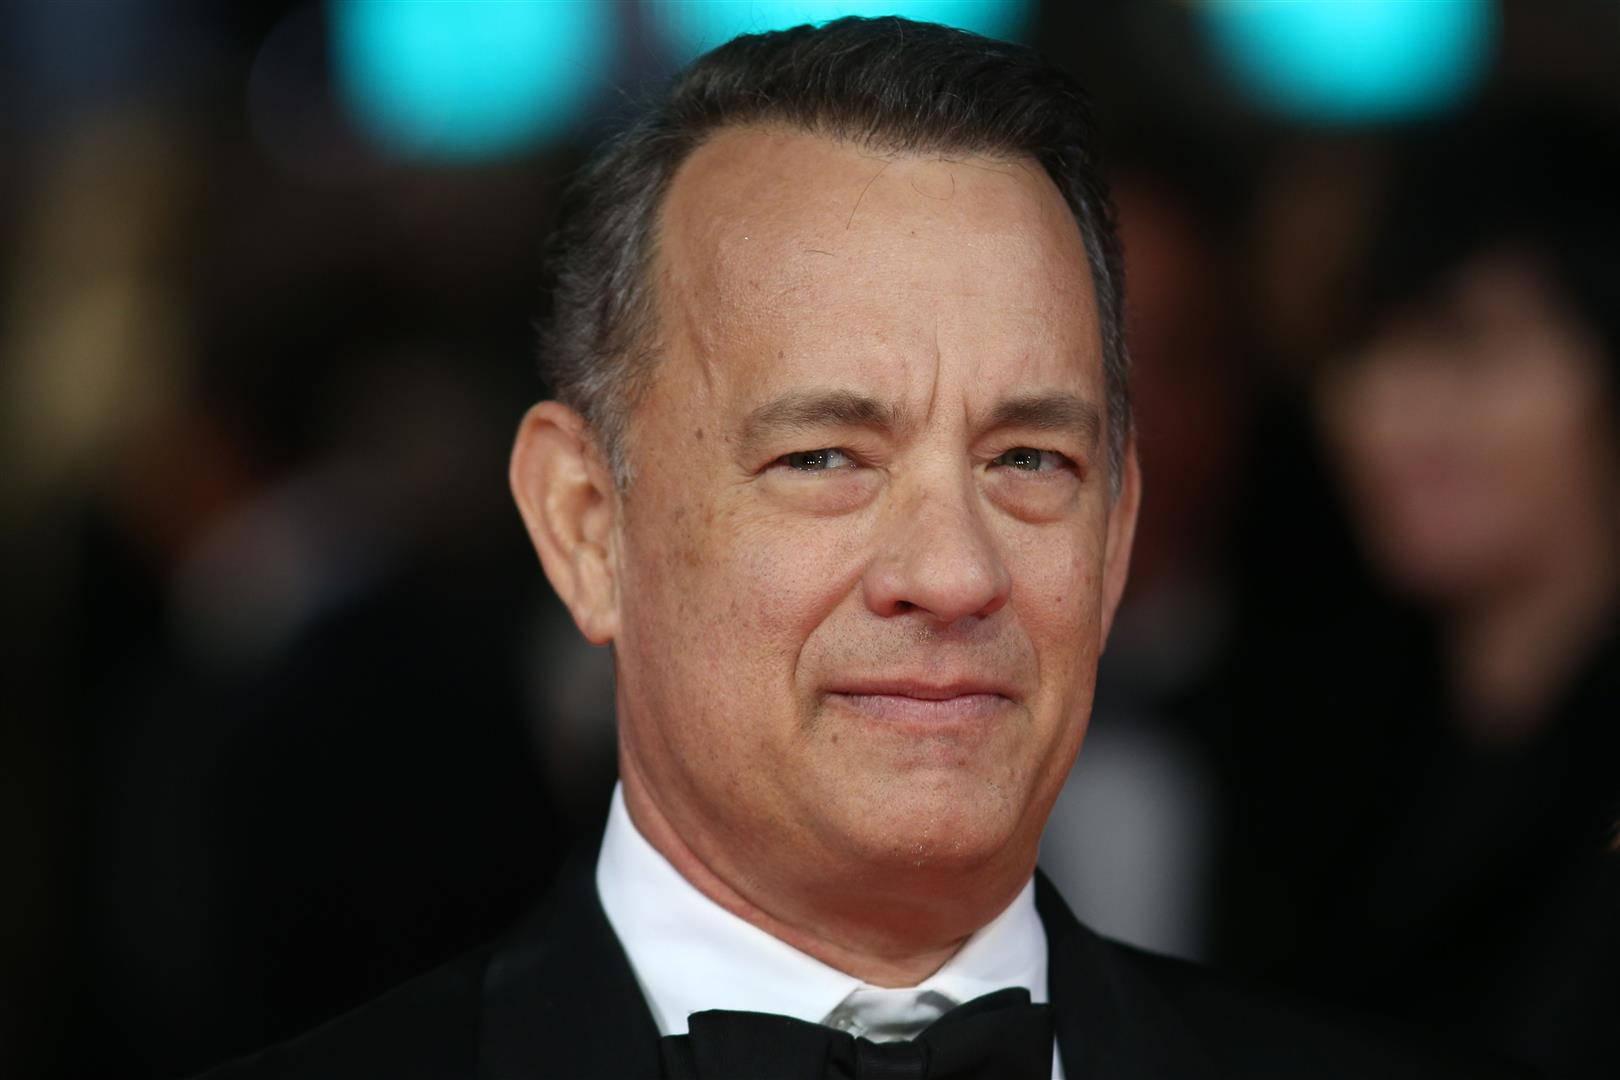 1956 Freimaurer Tom Hanks. Amerikanischer Schauspieler. Filmauswahl: Splash, Scott & Huutsch, Schlaflos in Seattle, Philadelphia, Forrest Gump, Apollo 13, Toy Story (Stimme), Der Soldat James Ryan, The Green Mile, Cast Away, My Big Fat Greek Wedding, Catch Me If You Can, Terminal, Cars (Stimme), Der Da Vinci Code - Sakrileg, Illuminati und Cloud Atlas